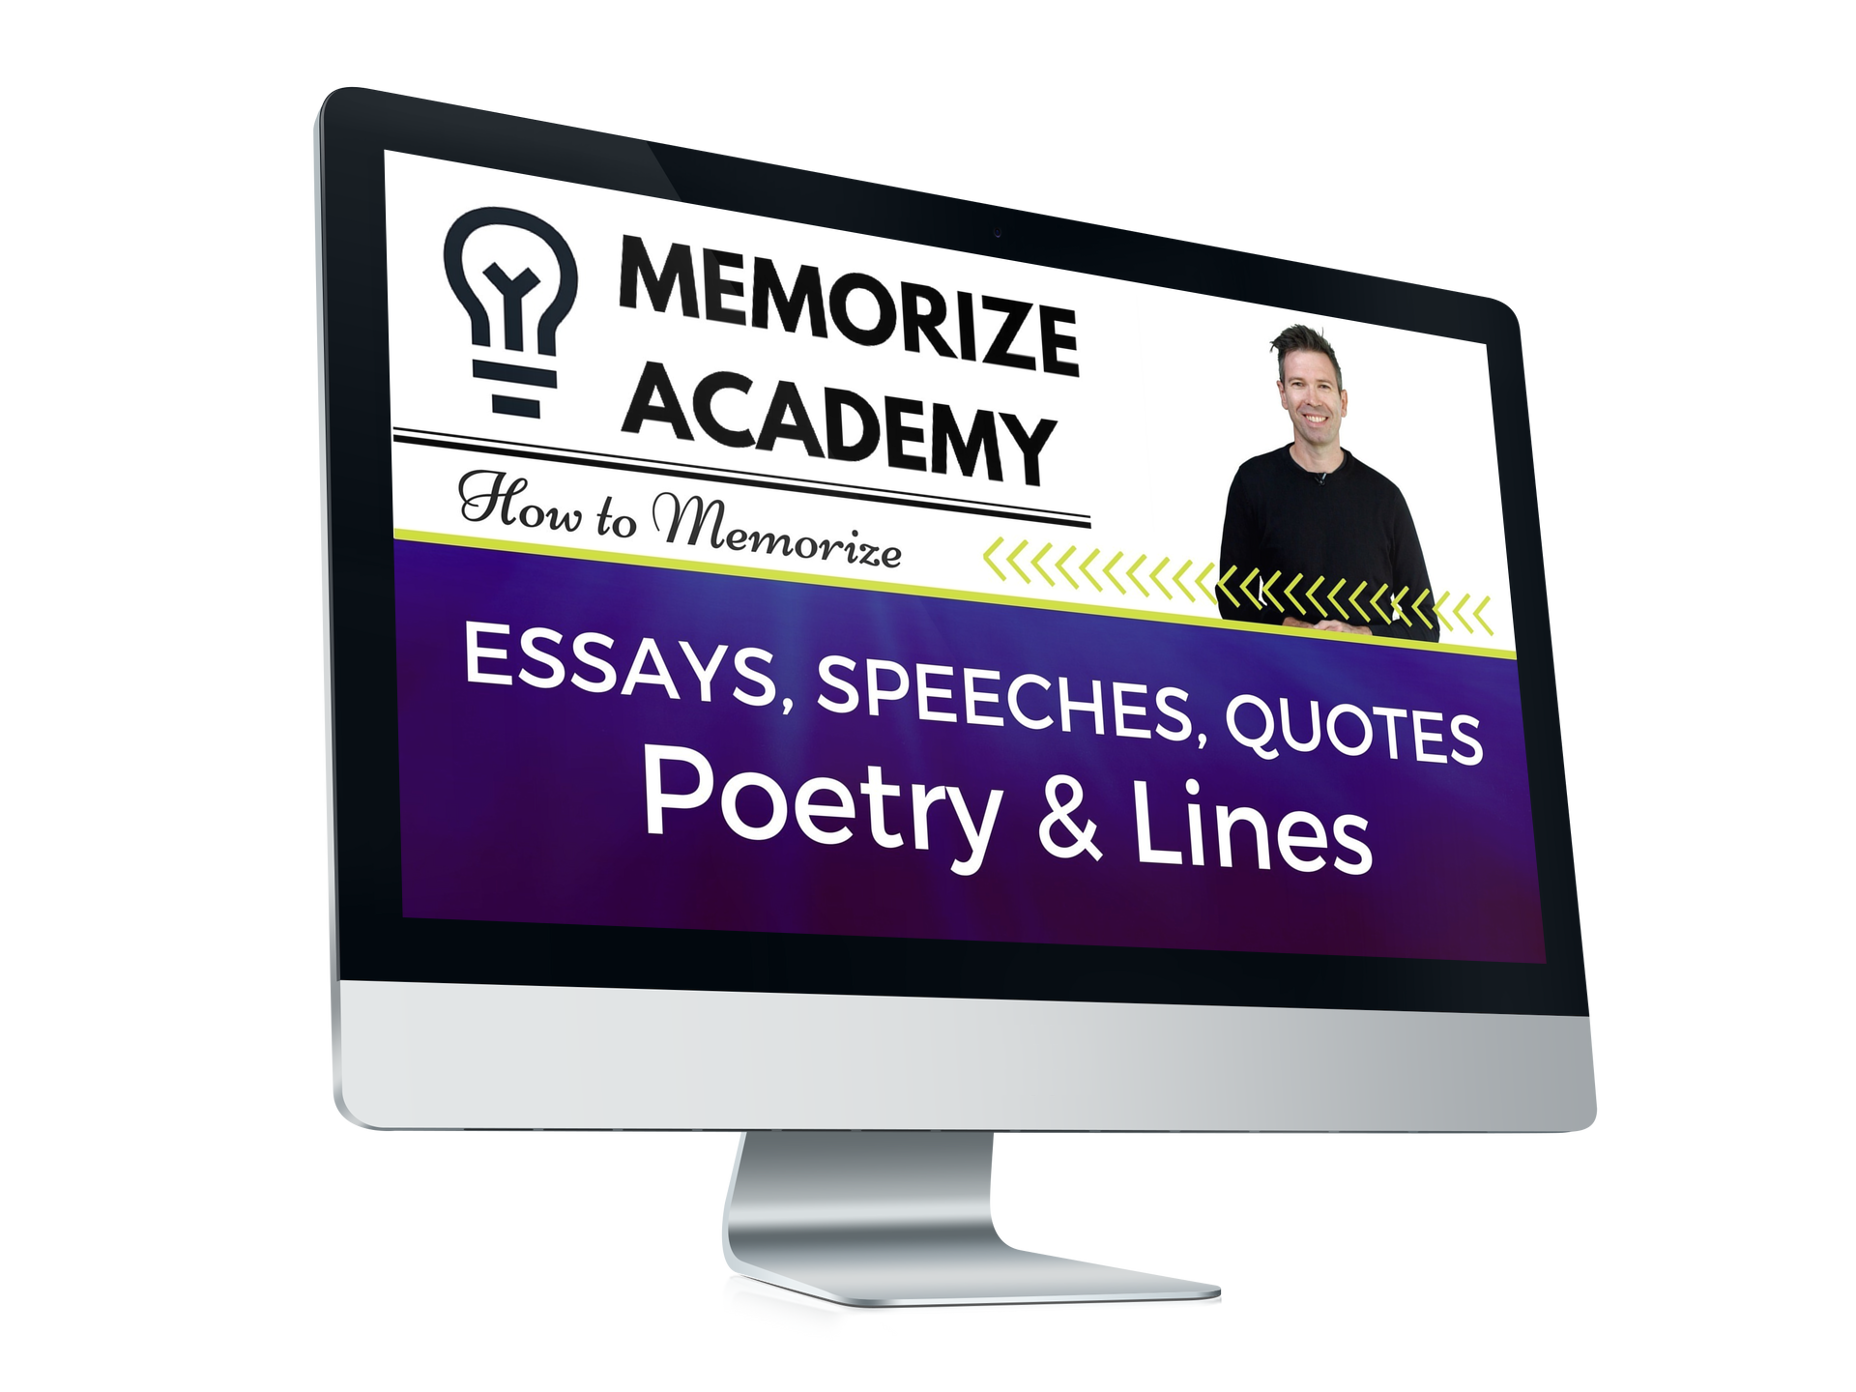 memorising essays Break the essay down into small parts – it is easier to memorize an essay when you do it in small chunks break the essay down into small sections depending on the length of the essay, each section might be a few sentences or one paragraph.